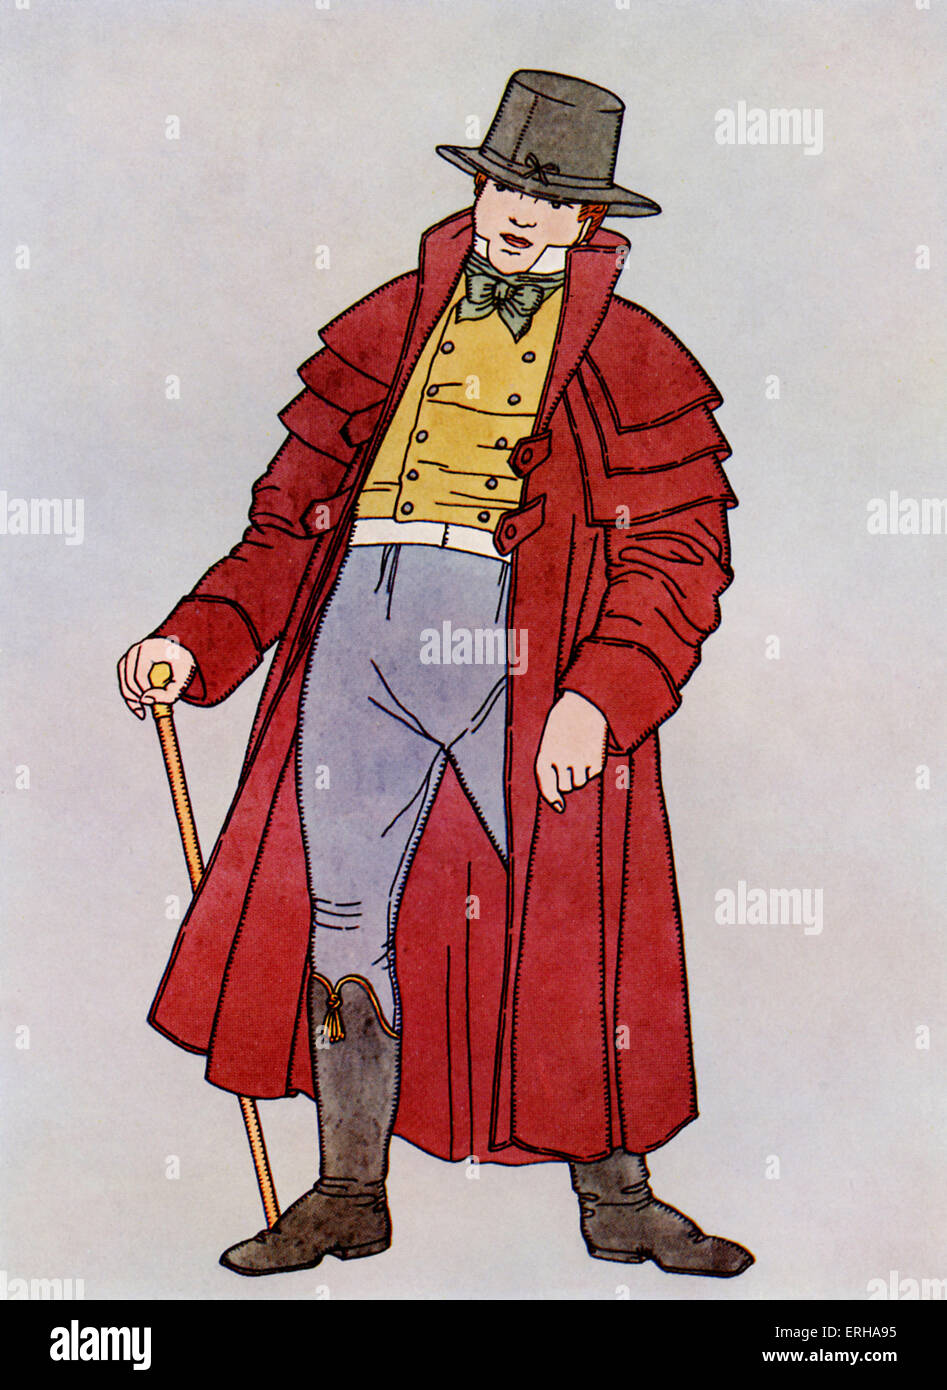 Depiction of a gentleman wearing the 'Garrick' stlye of overcoat, which was popular c.1800. - Stock Image